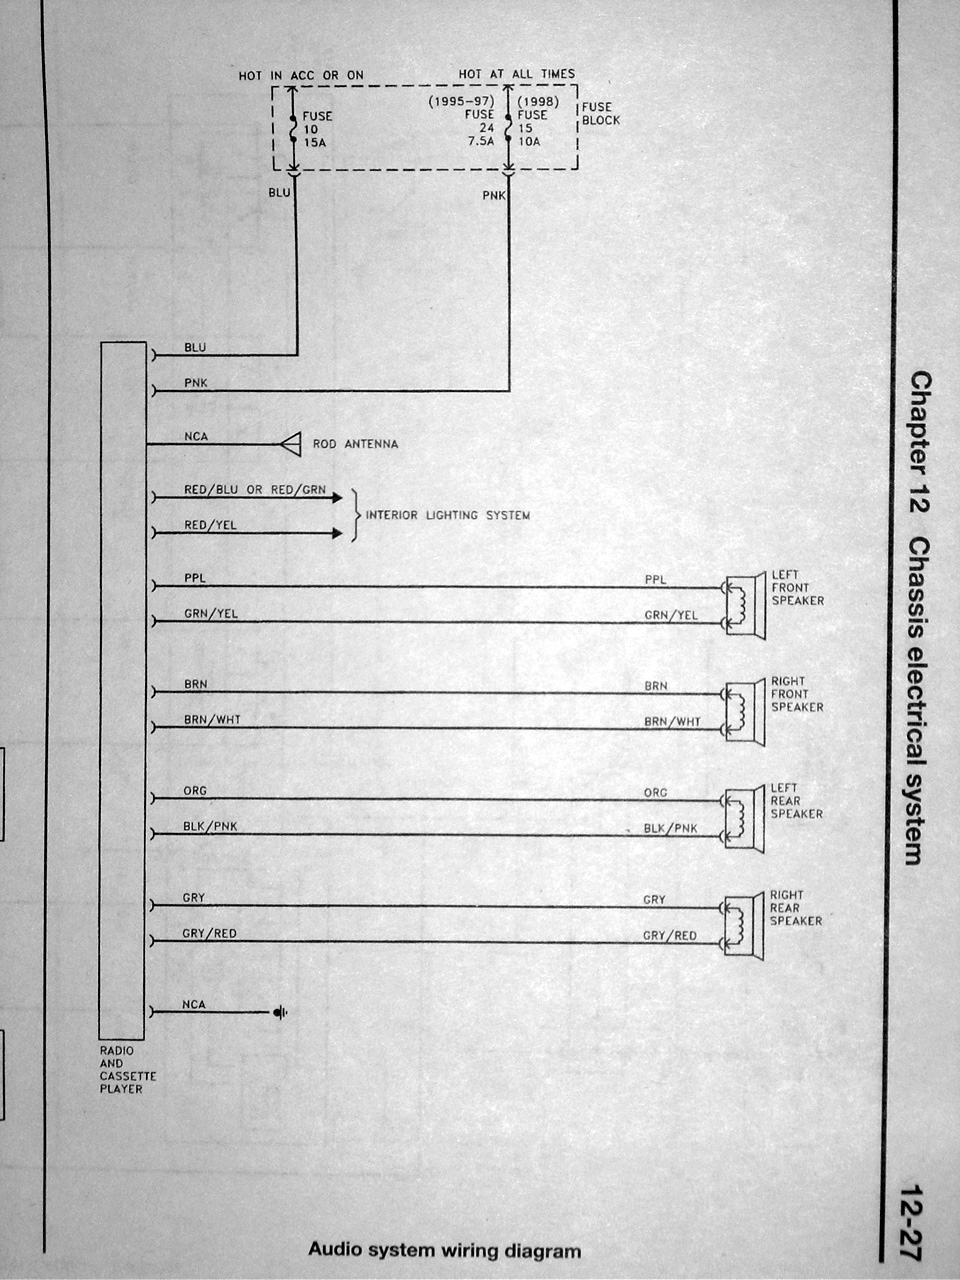 DSC01849 wiring diagram thread *useful info* nissan forum 1998 nissan maxima bose radio wiring diagram at soozxer.org